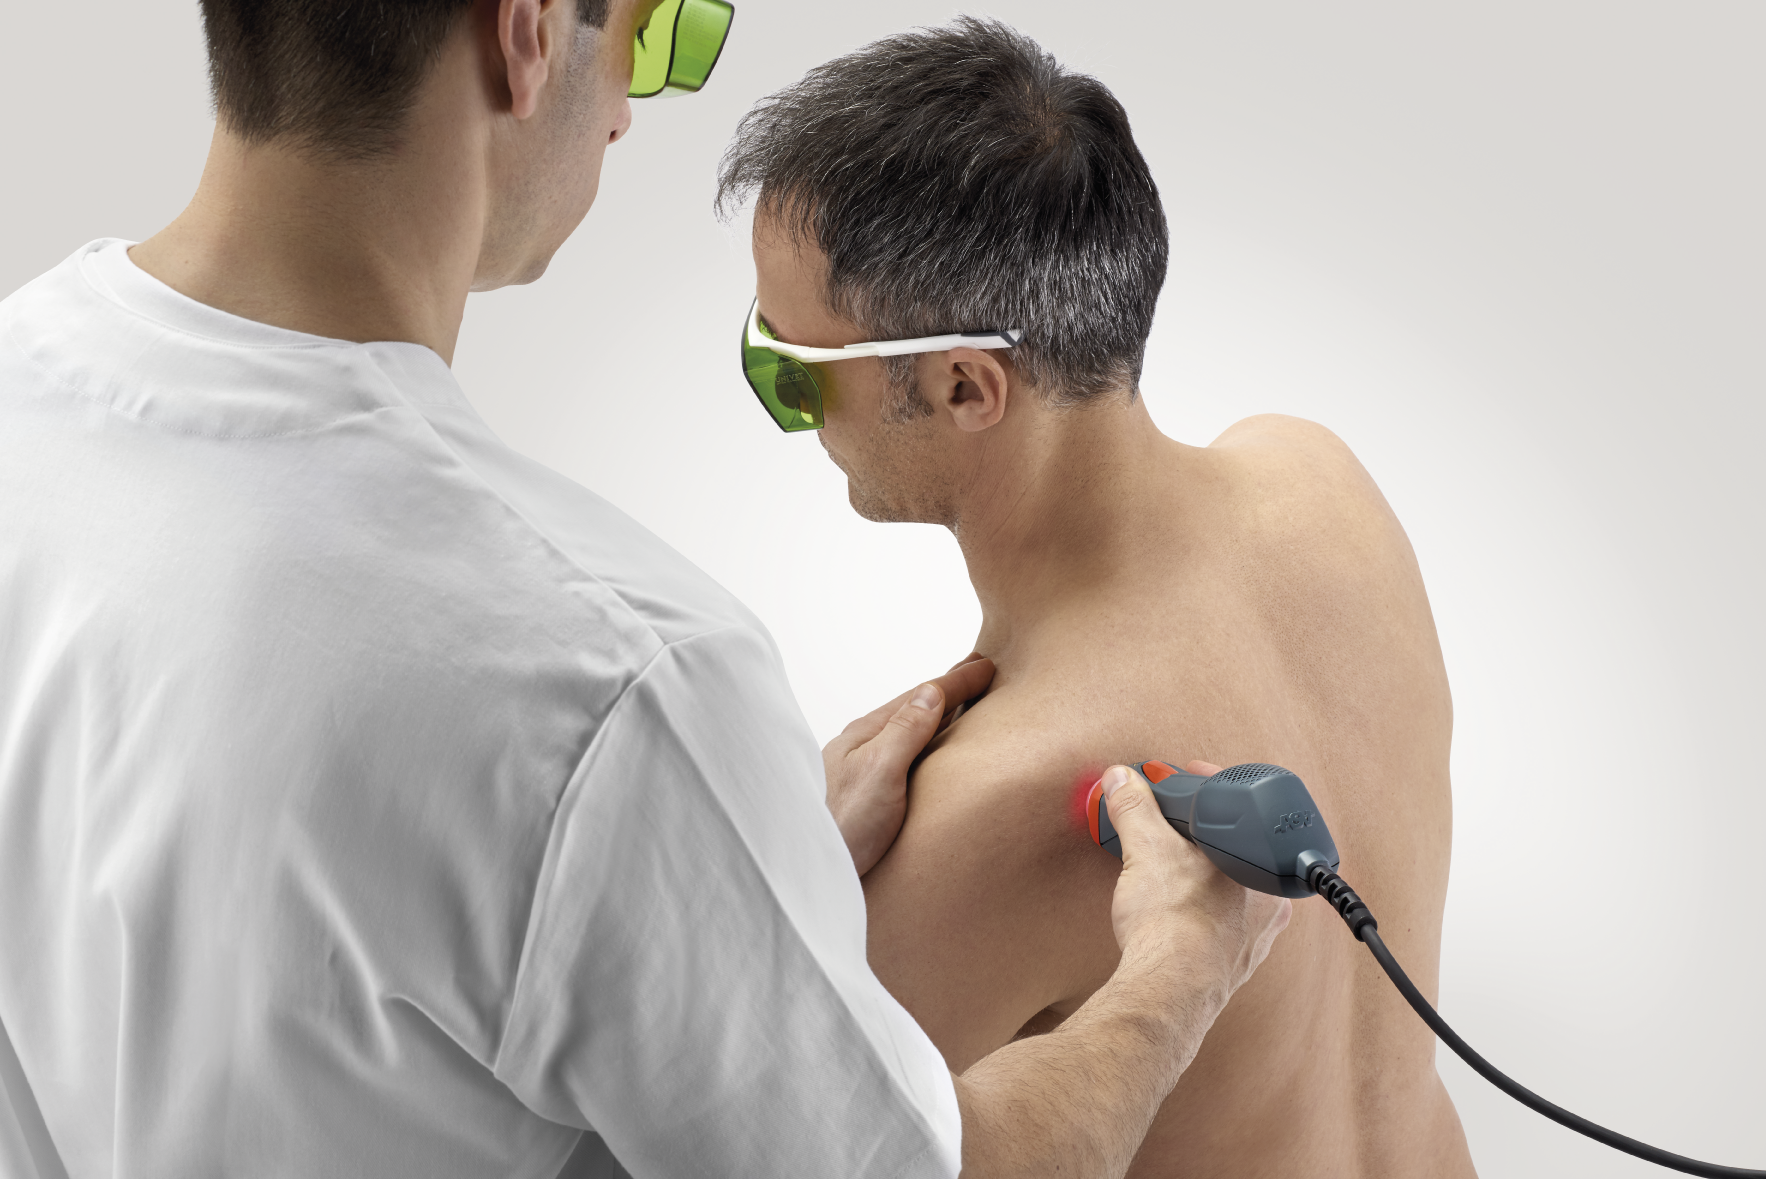 Mphi 75 - shoulder laser treatment